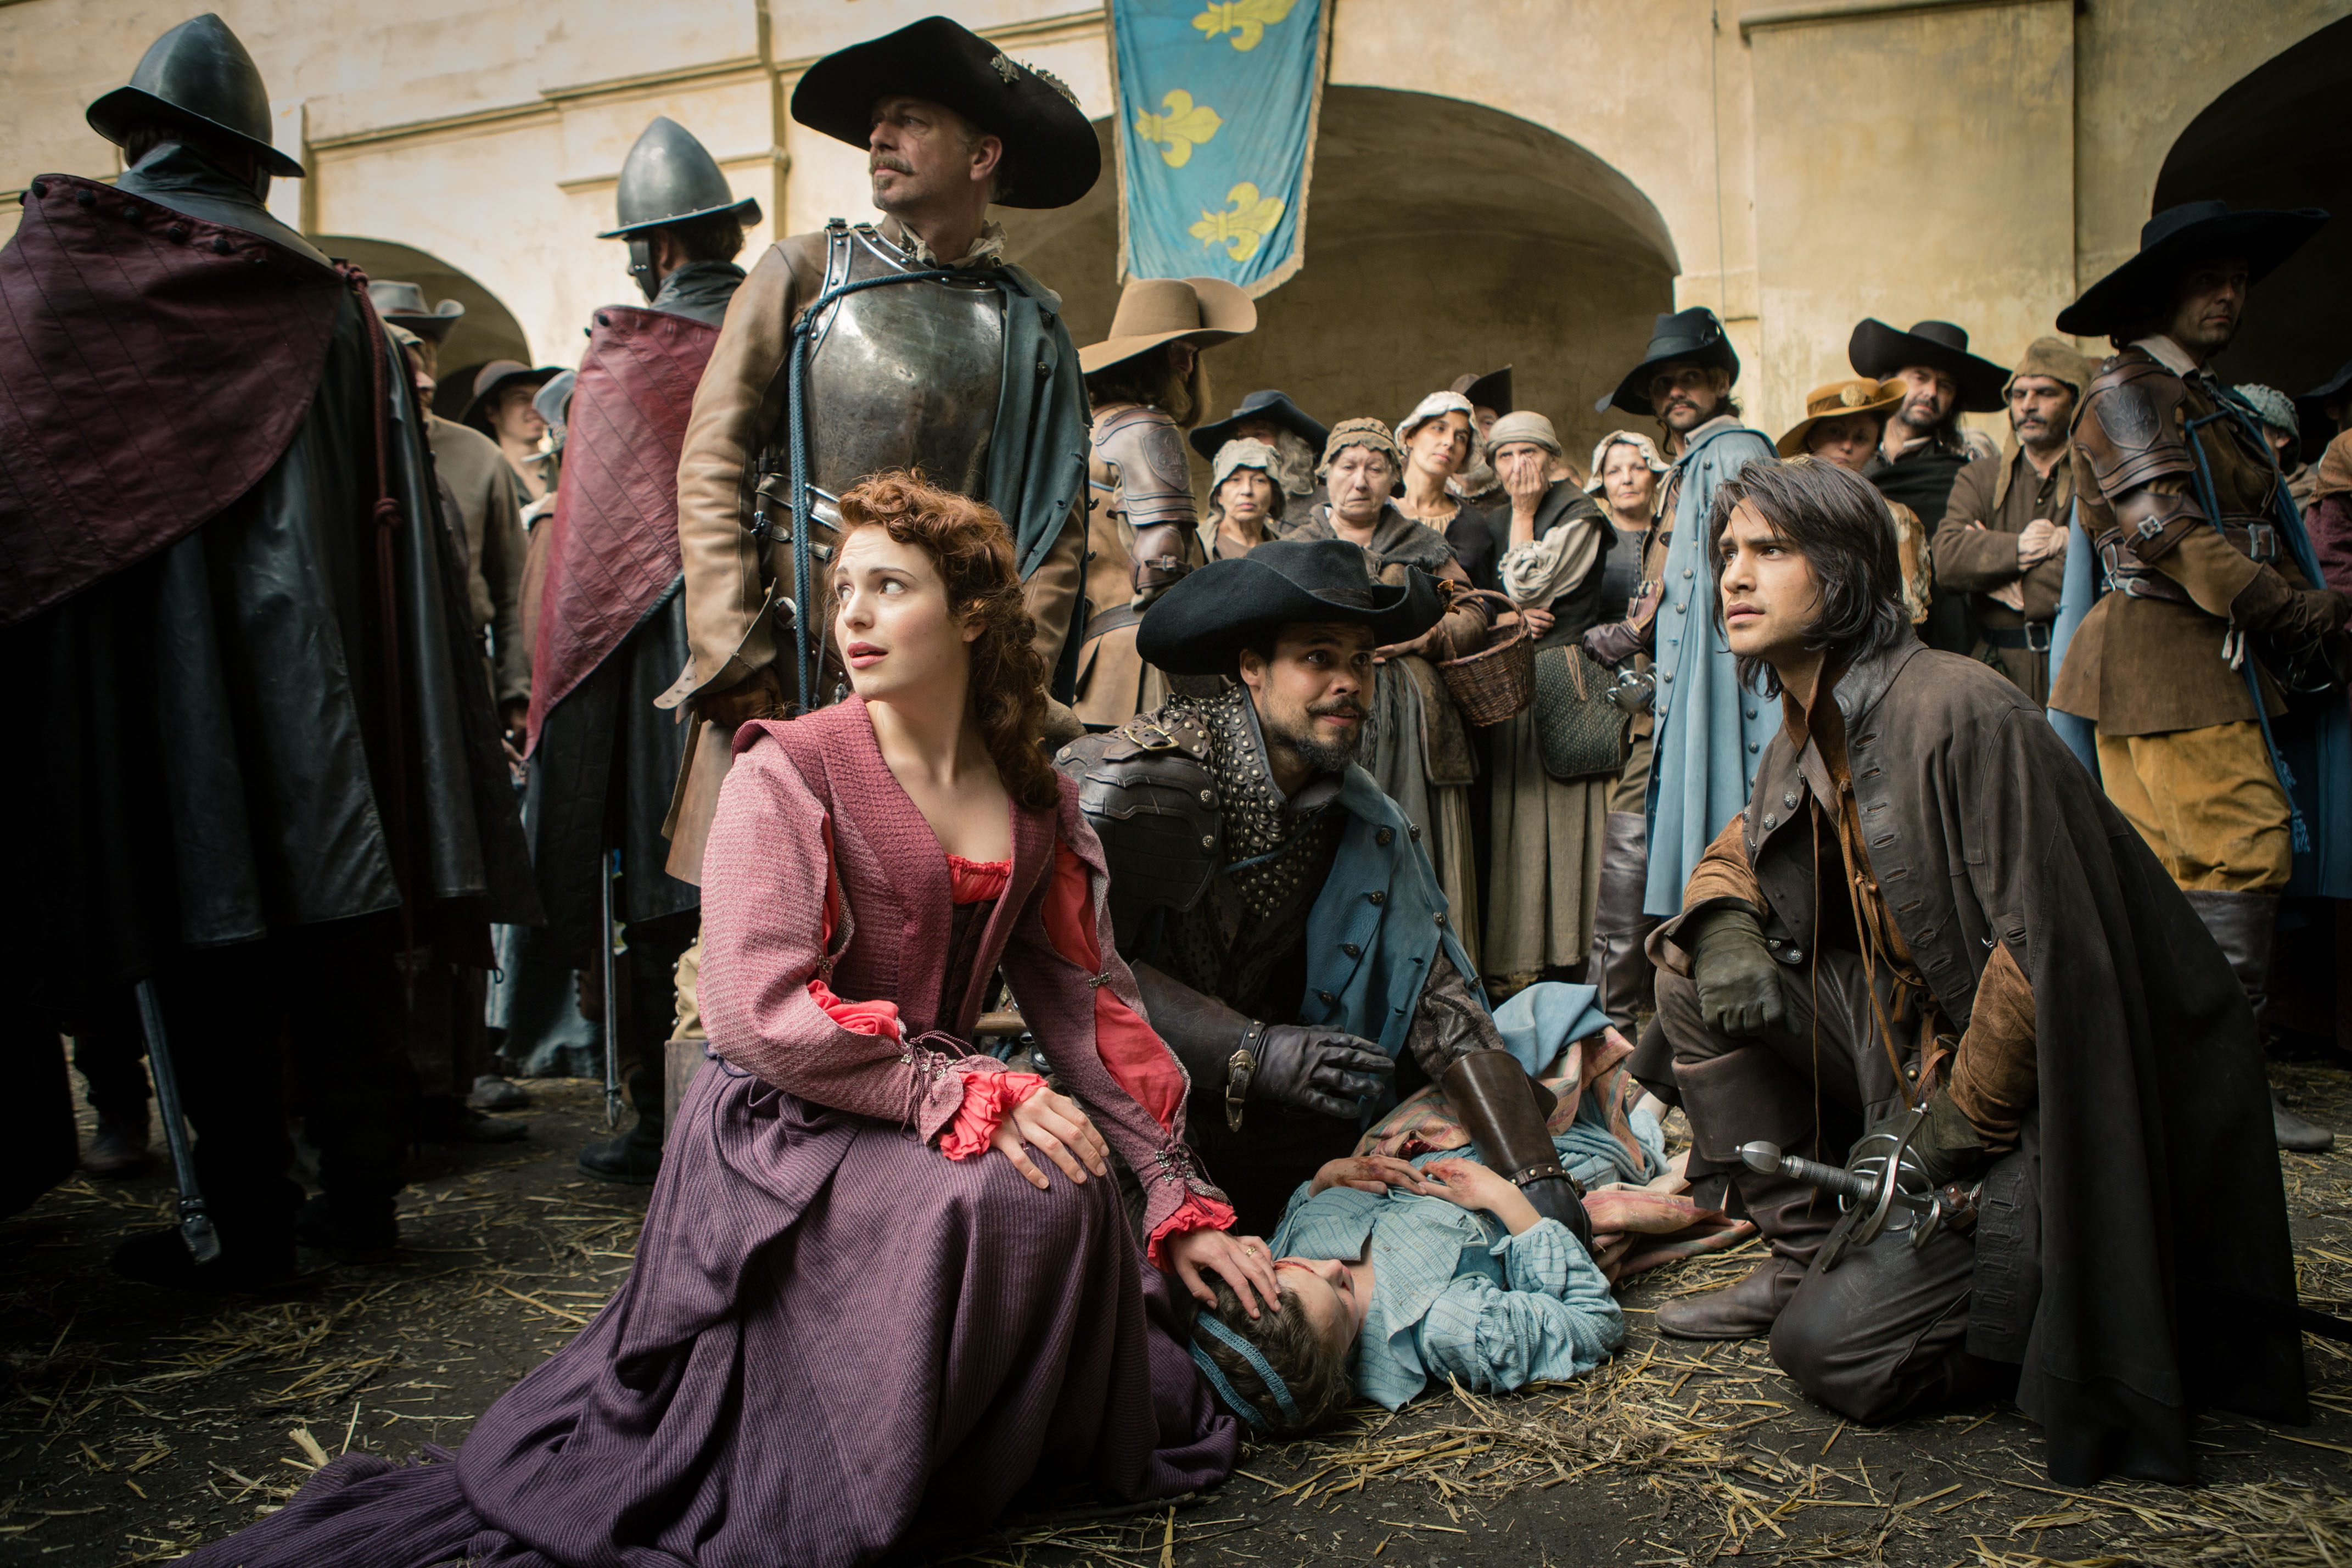 [SERIADO] The Musketeers - BBC The-Musketeers-BBC-image-the-musketeers-bbc-36646720-4284-2856